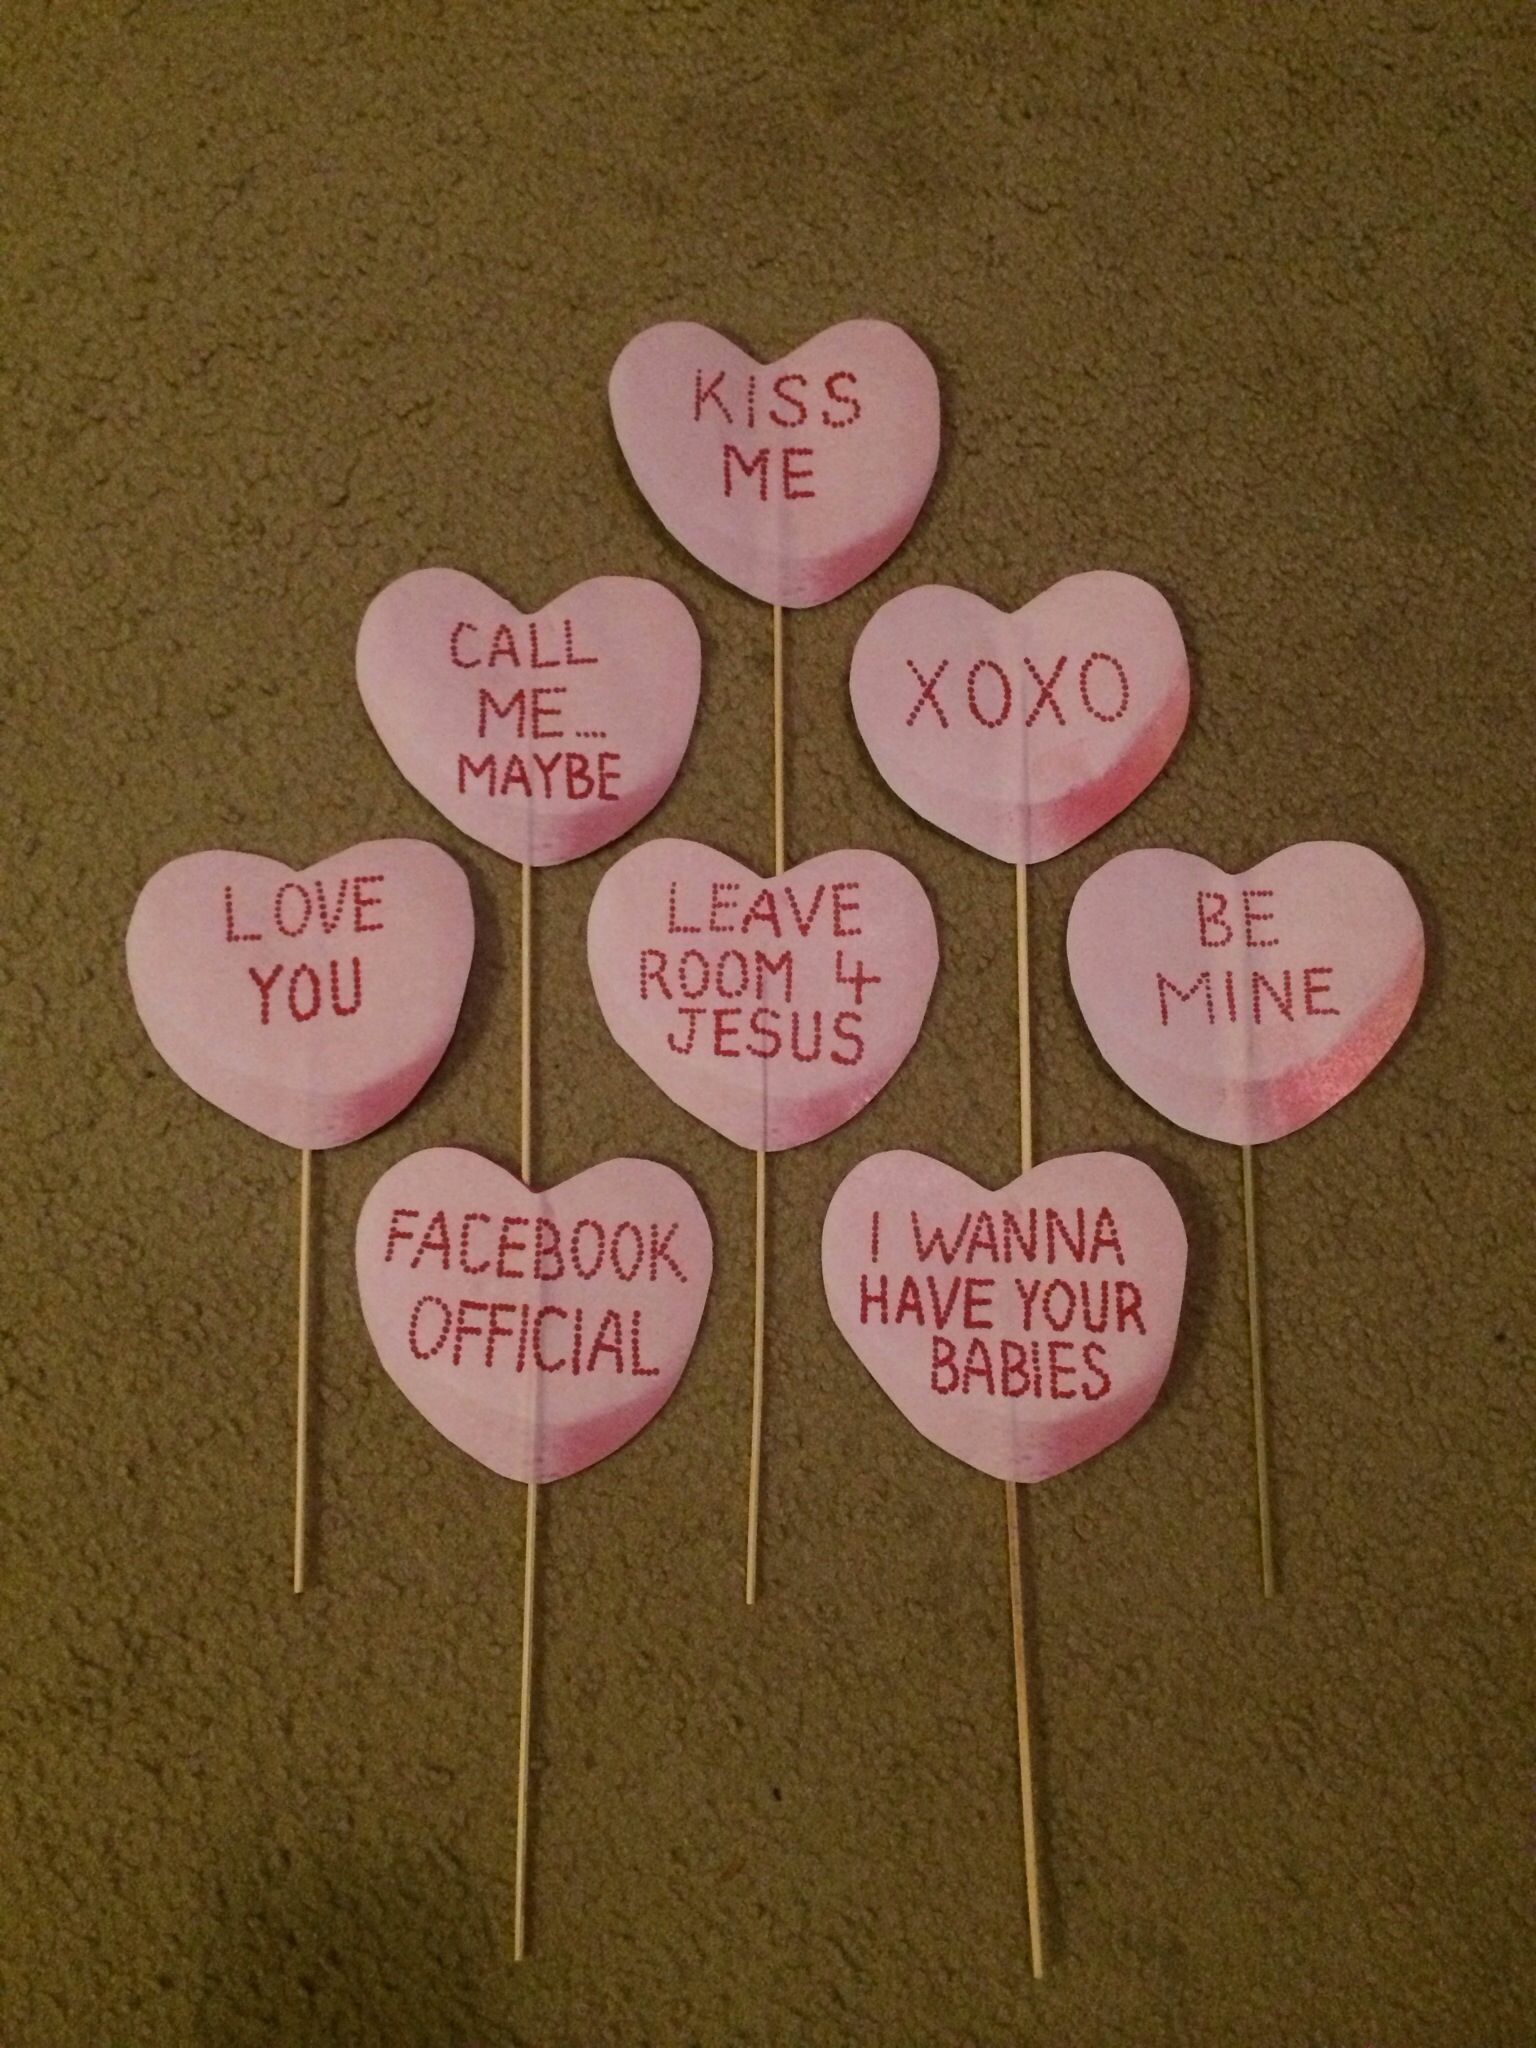 Handmade Cardboard Candy Hearts With Custom Messages Great Props For A Wedding Or Valentine S Day Photo B Valentines Day Photos Best Friend Crafts Heart Candy